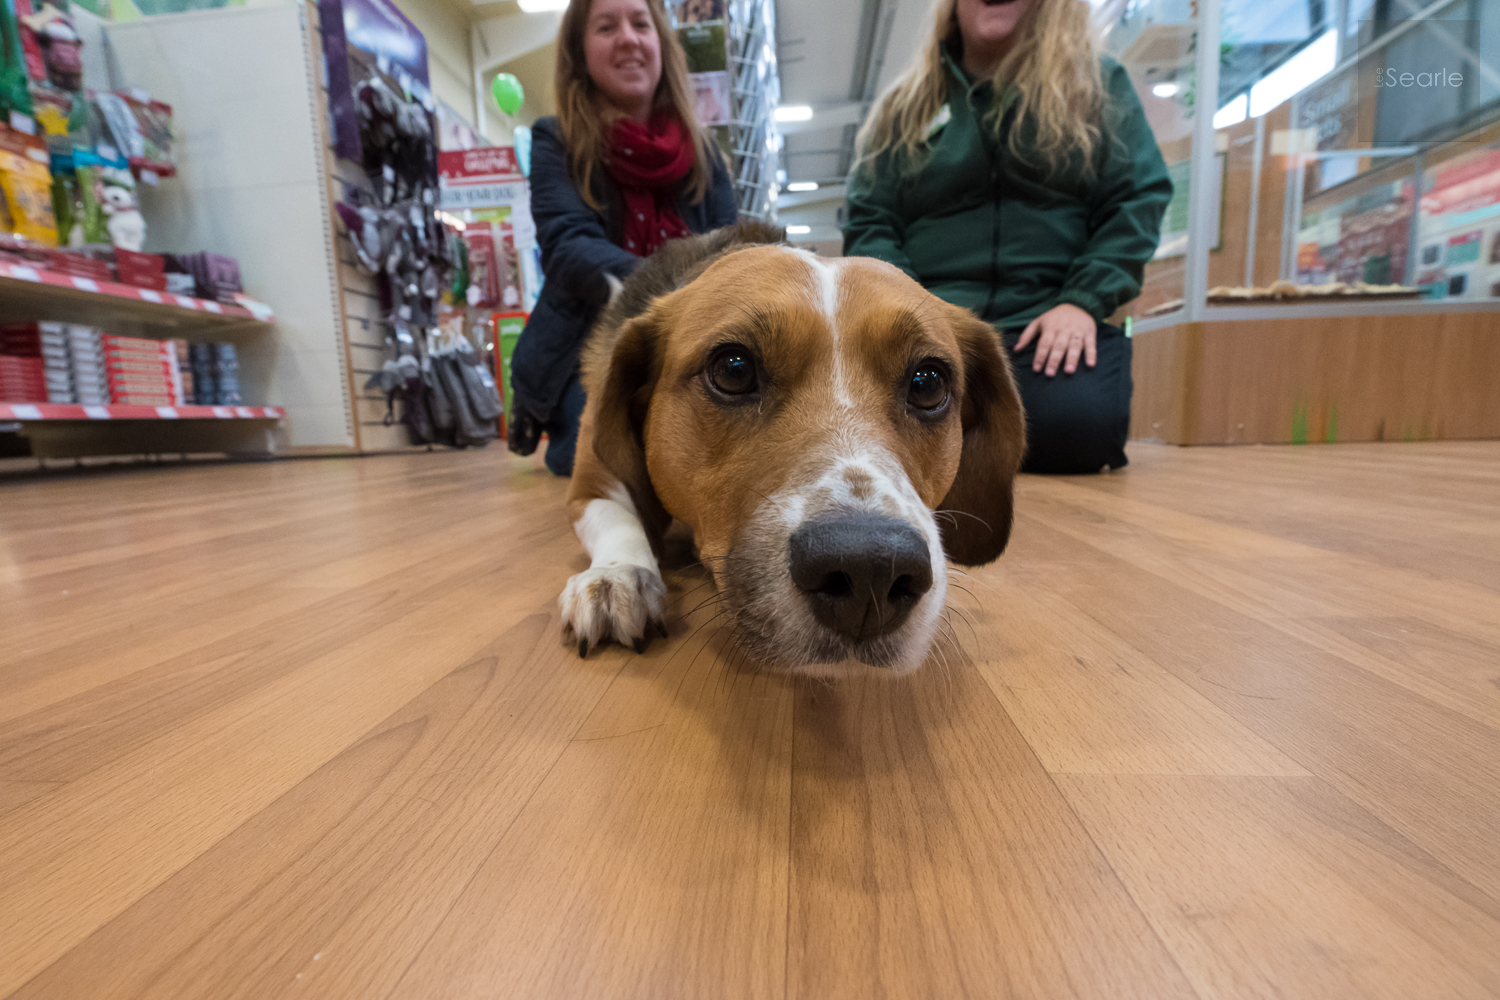 Pets-at-home-launch-penzzance-photography-11.jpg